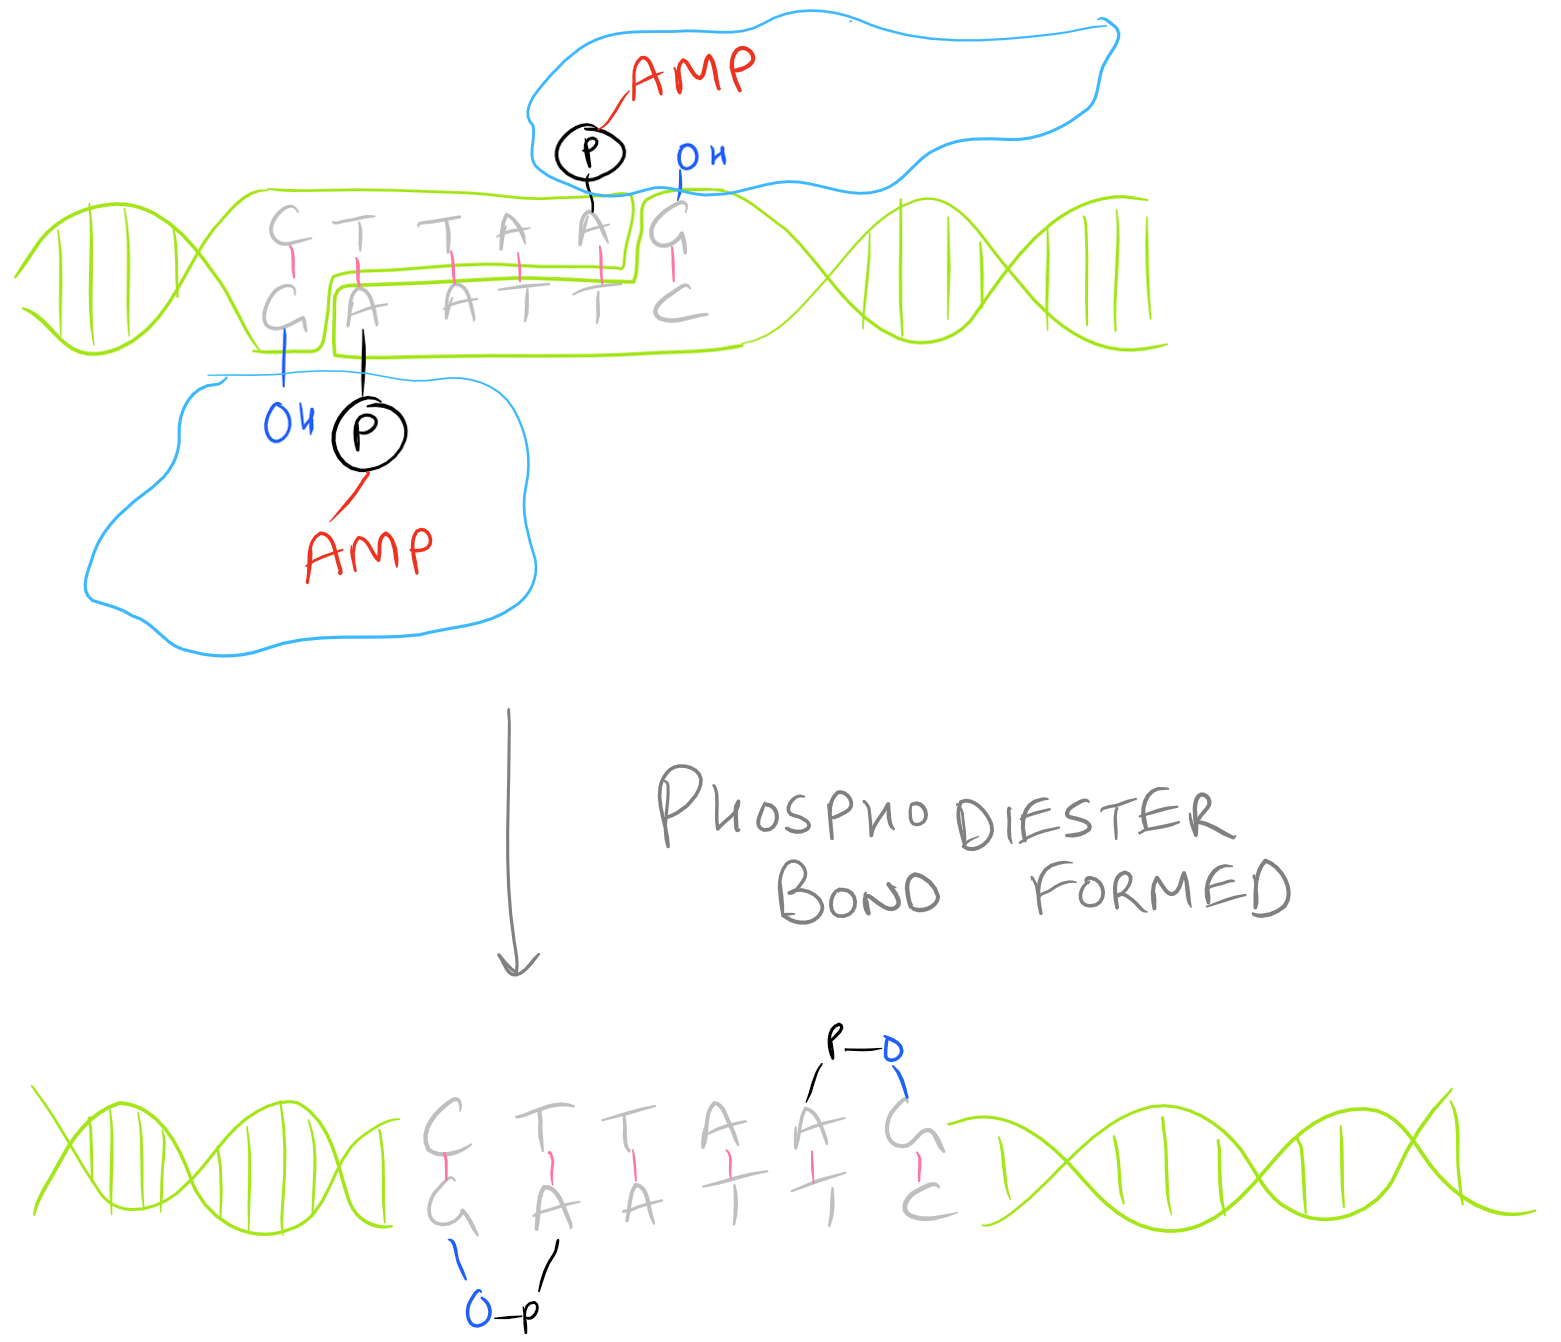 Phosphodiester Bond Formation during Ligation